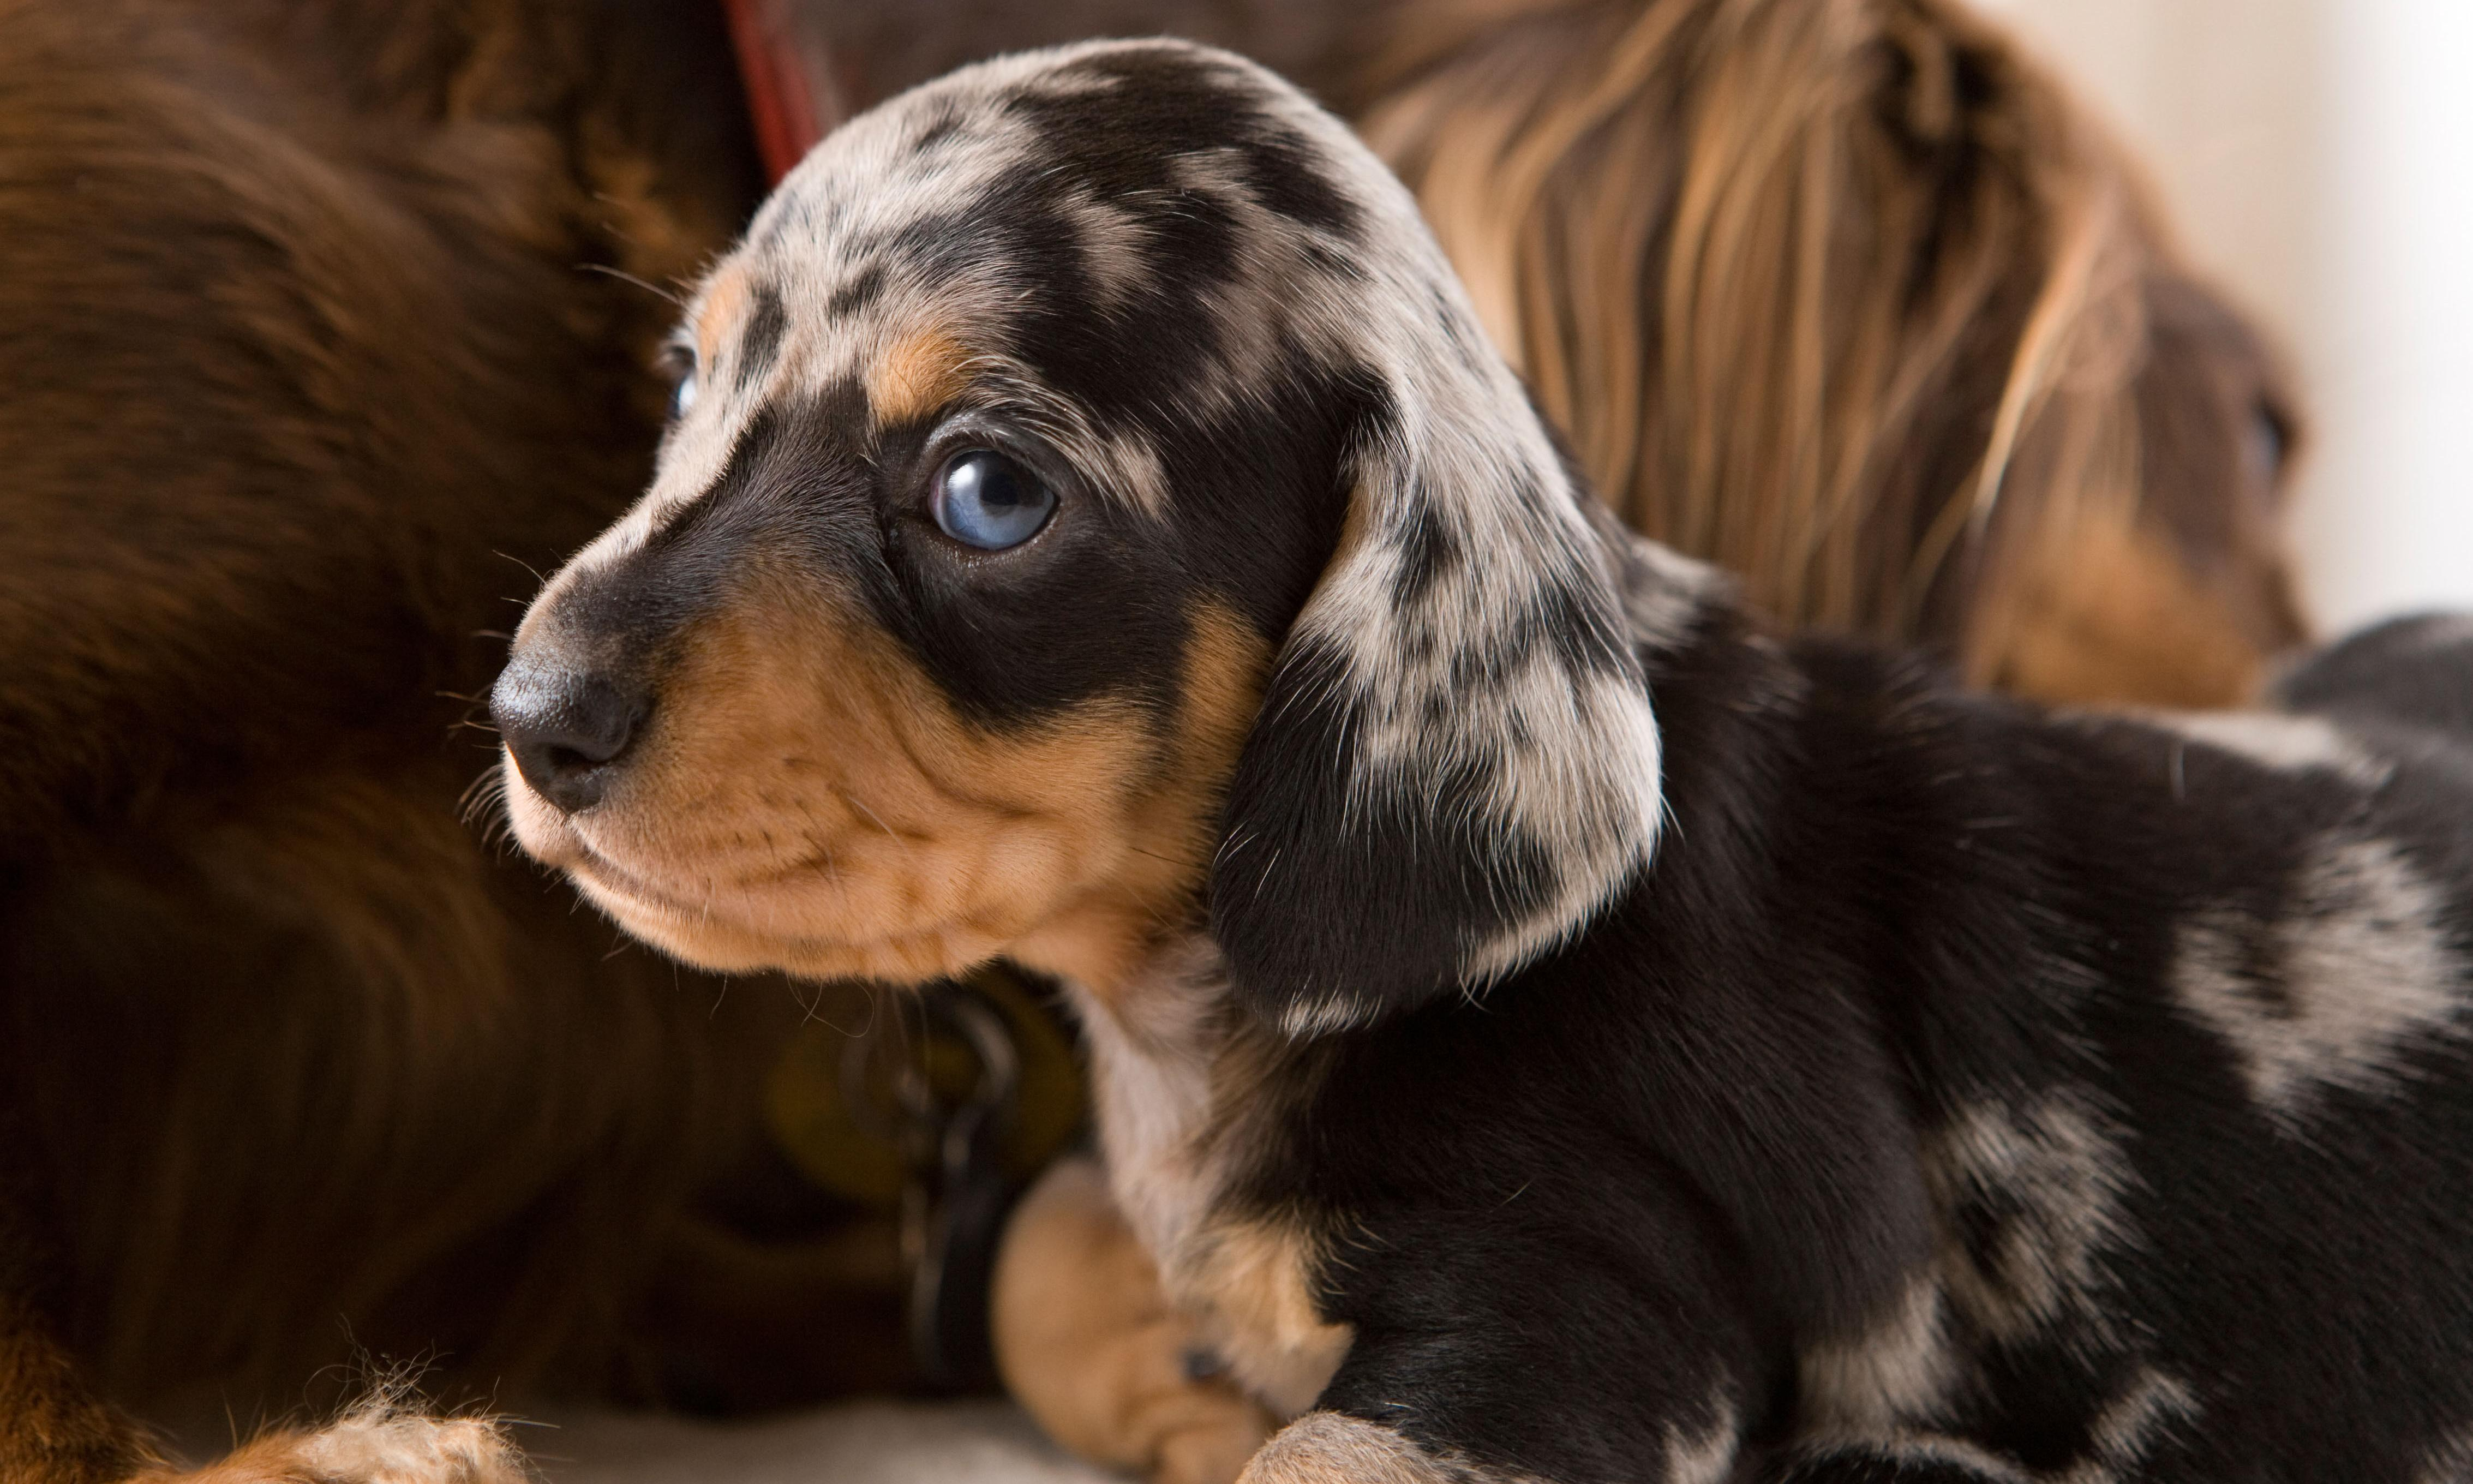 Dogs mirror stress levels of owners, researchers find